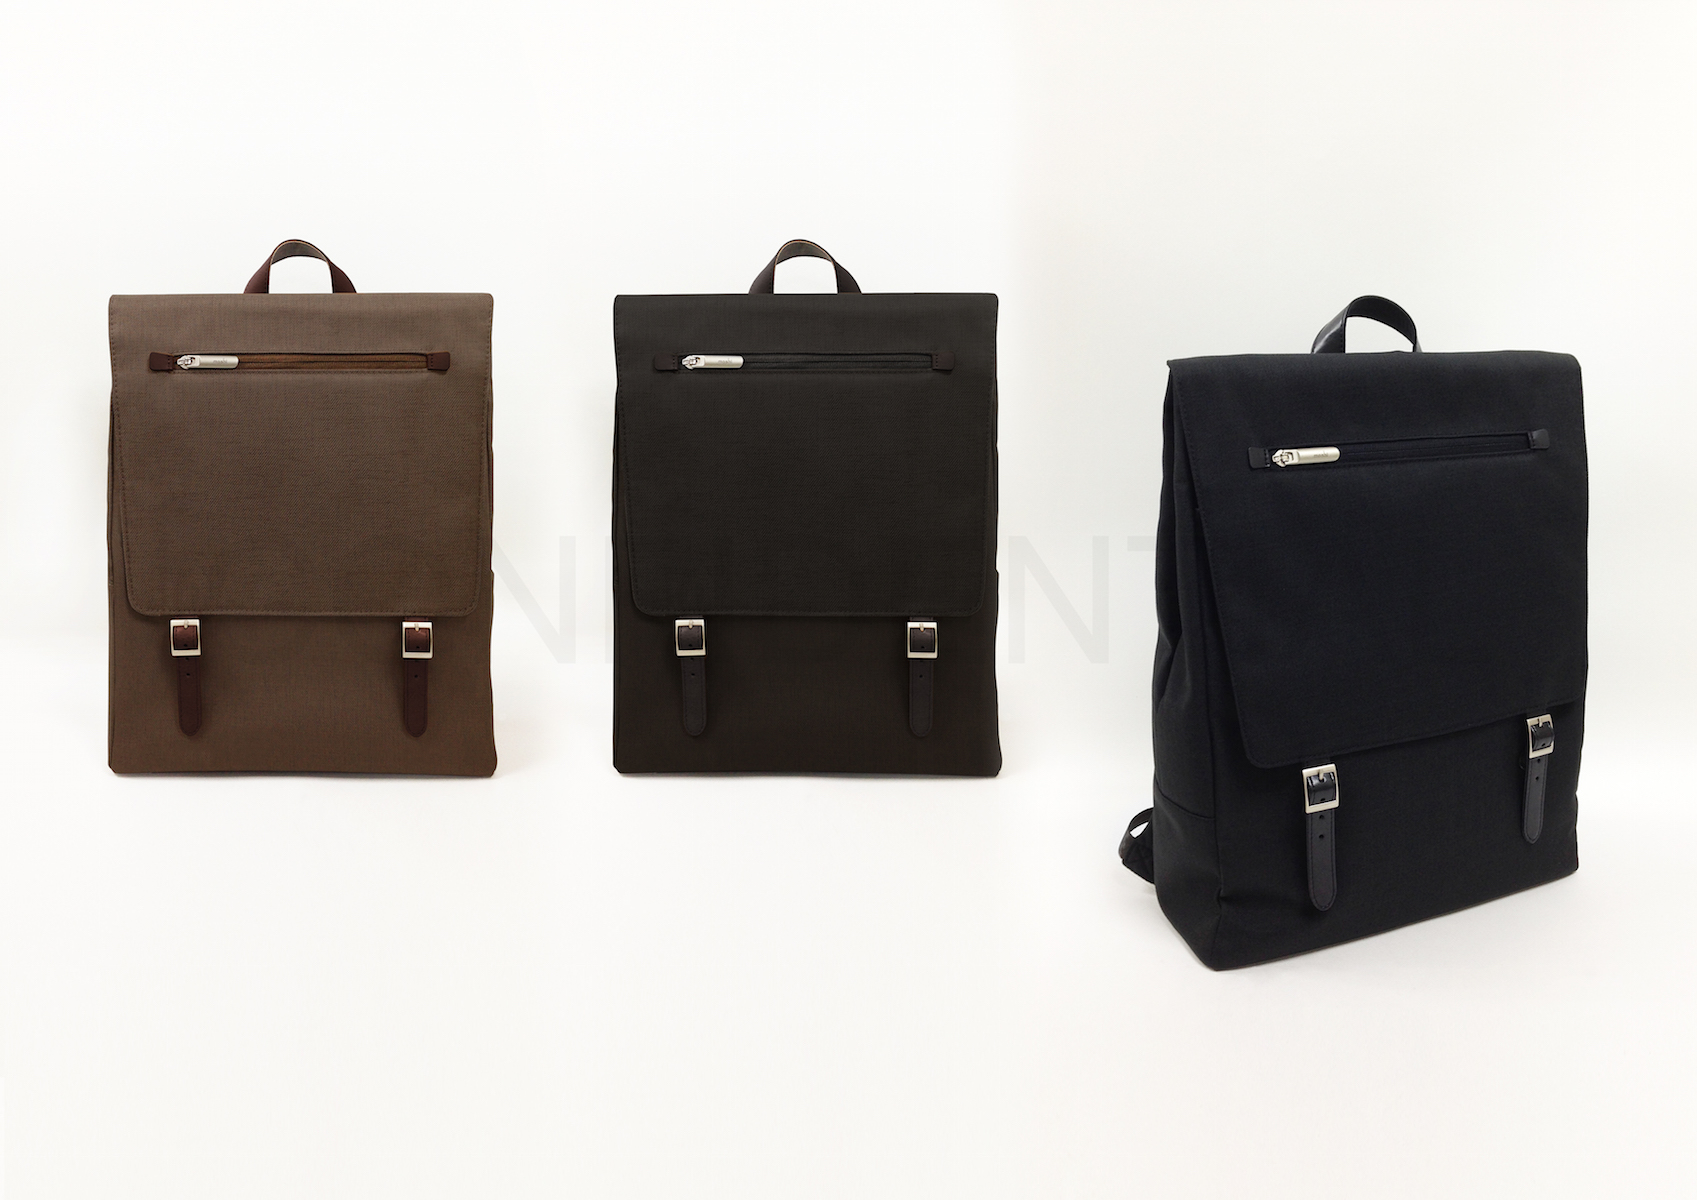 d7a0fac37e Each backpack will be available in two colors. Helios will be available in  charcoal black and cocoa brown (MSRP   150)